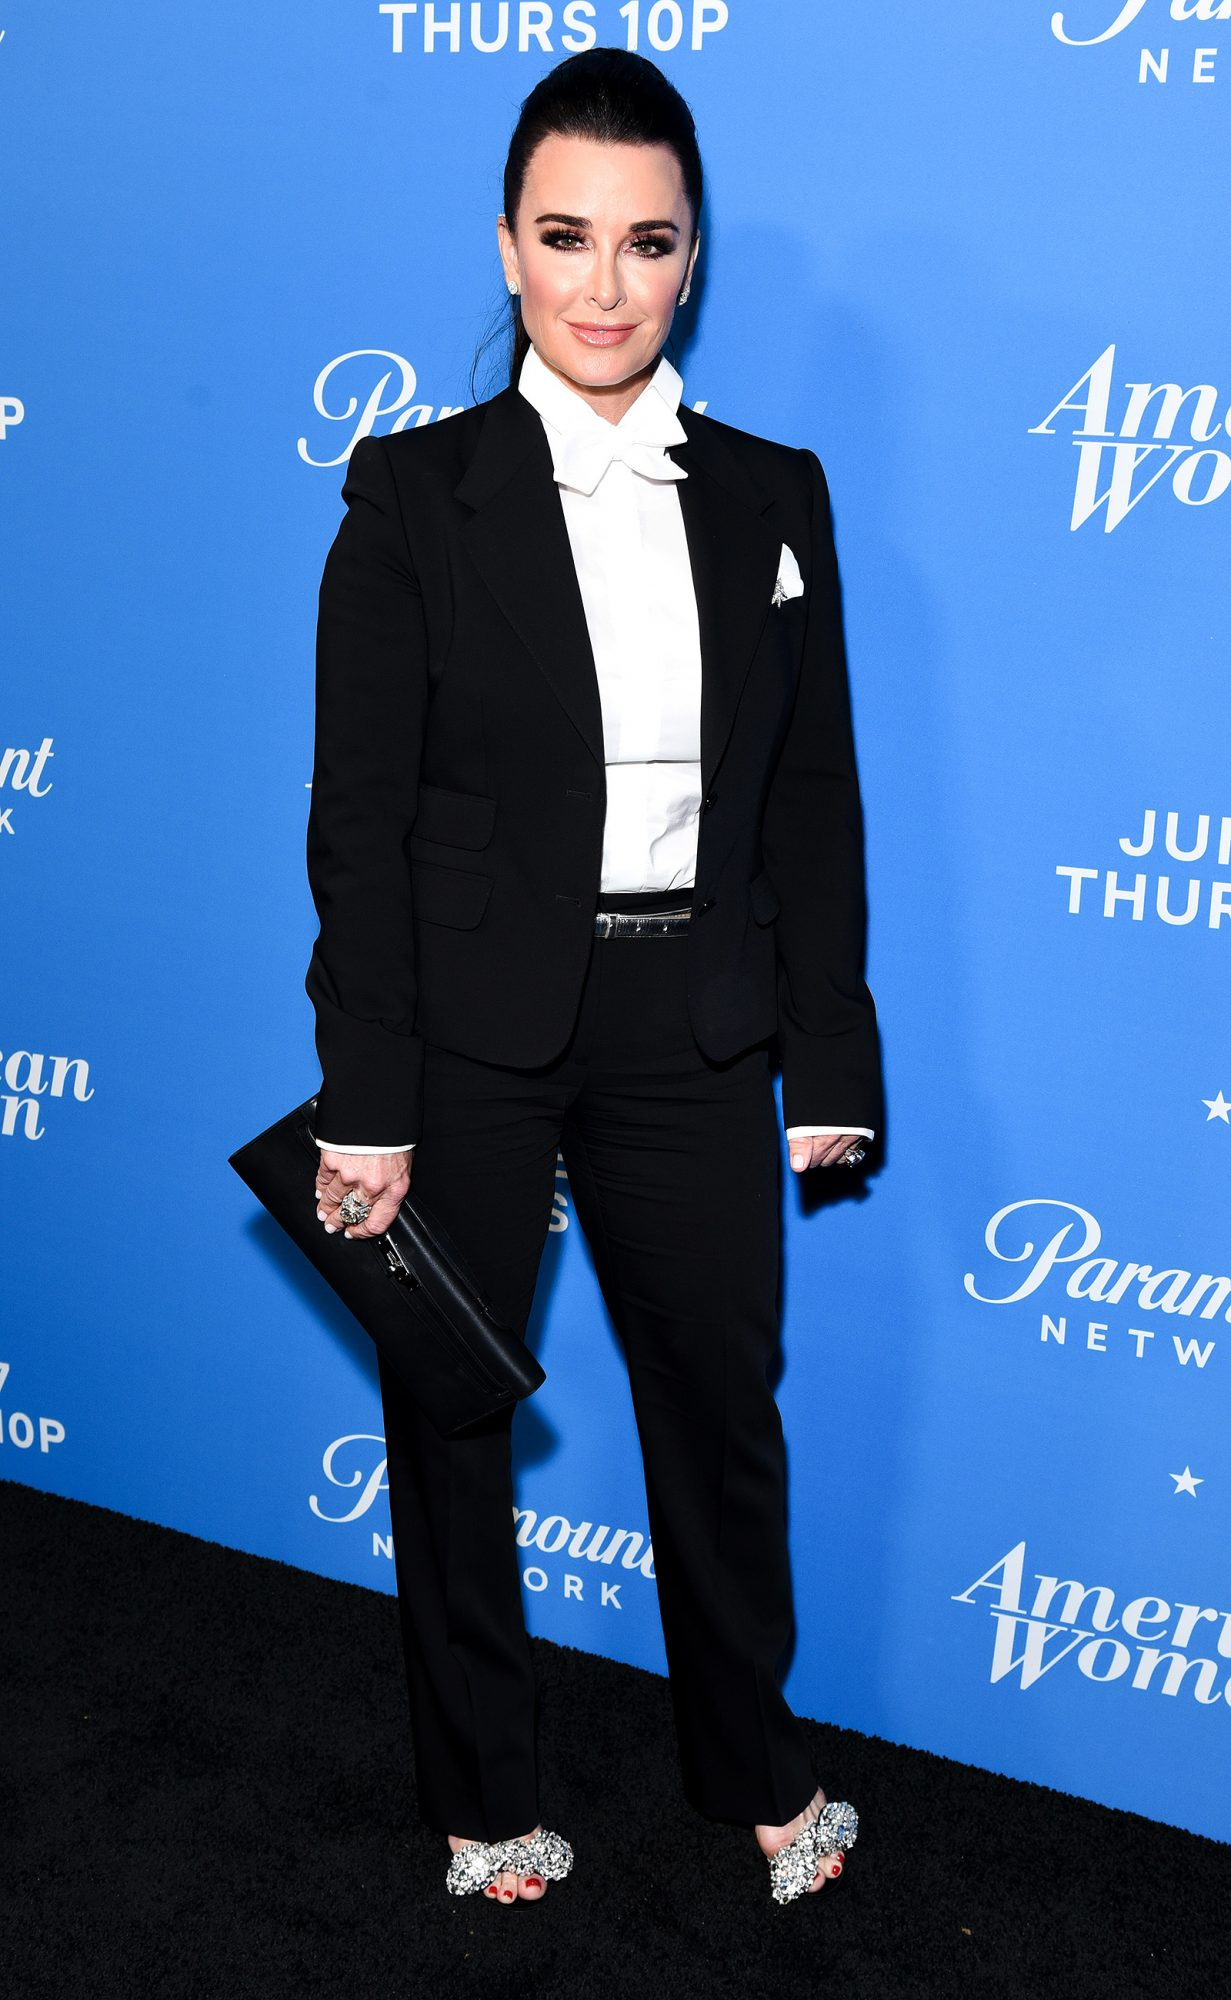 """Premiere Of Paramount Network's """"American Woman"""" - Arrivals"""